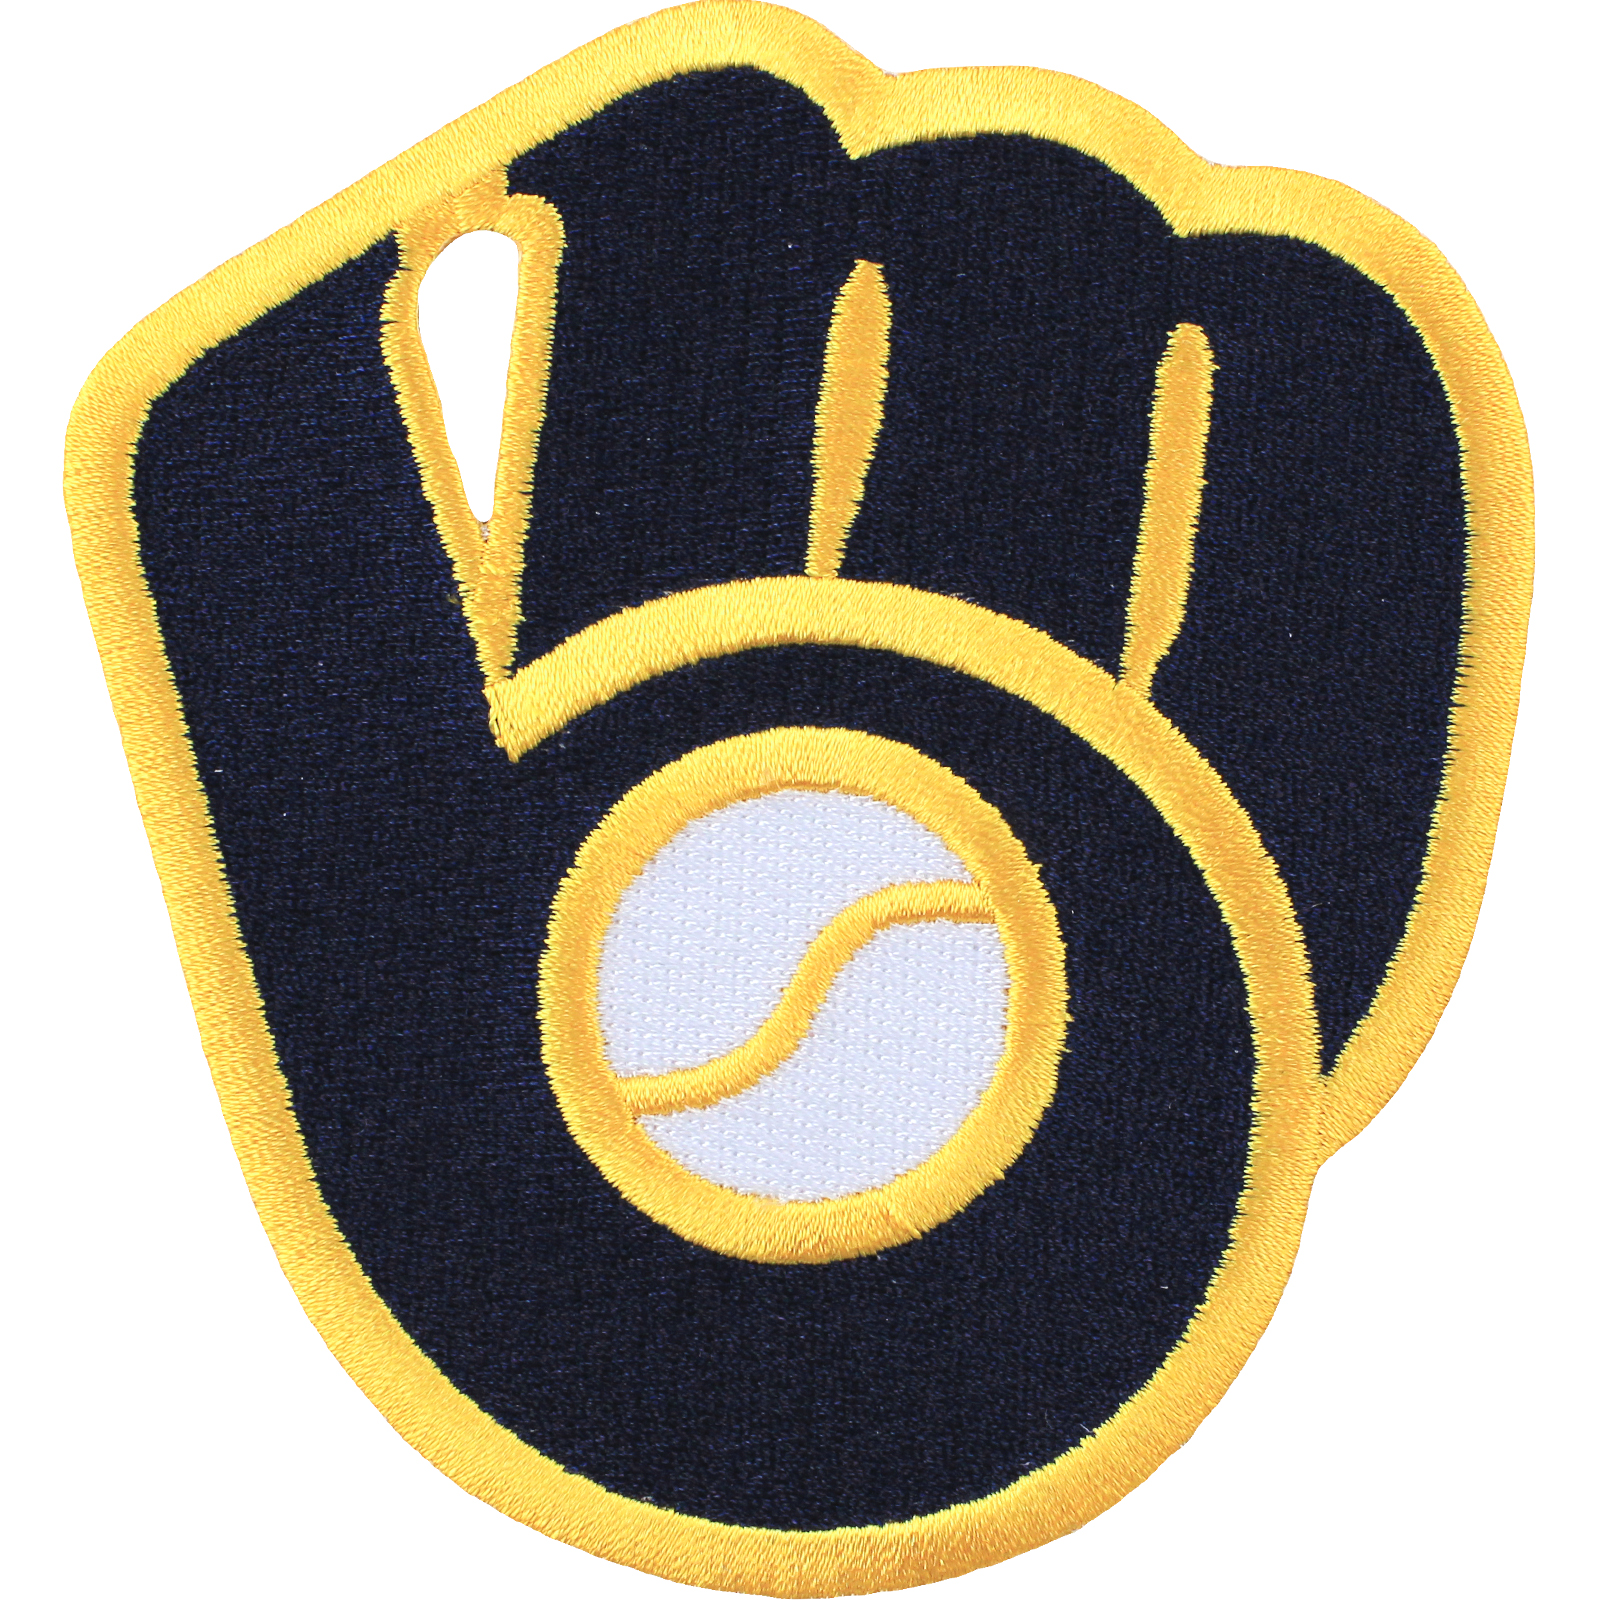 Details about Milwaukee Brewers Ball & Glove Alternative Blue Gold  Throwback Embroidered Patch.